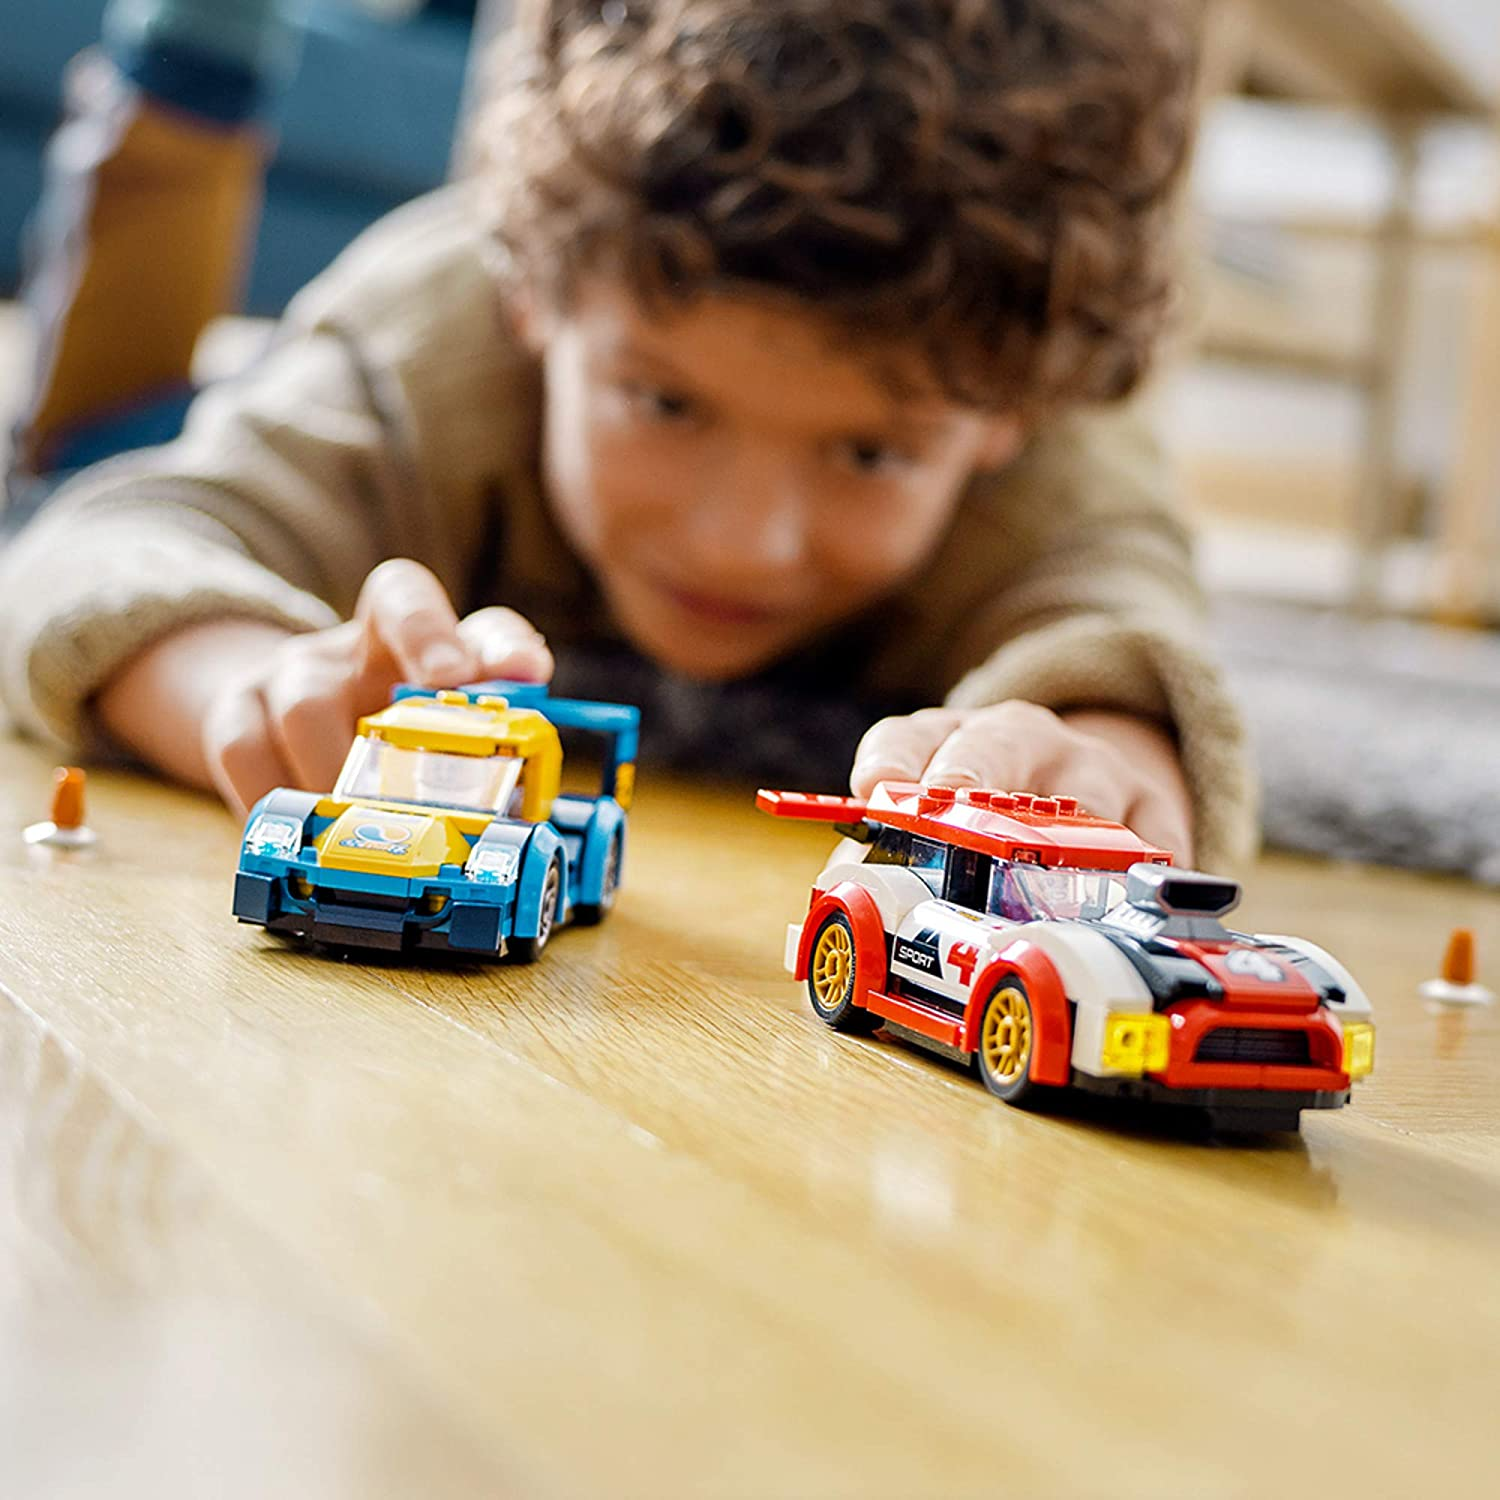 LEGO City Racing Cars 60256 Fun, Buildable Toy for Kids ...